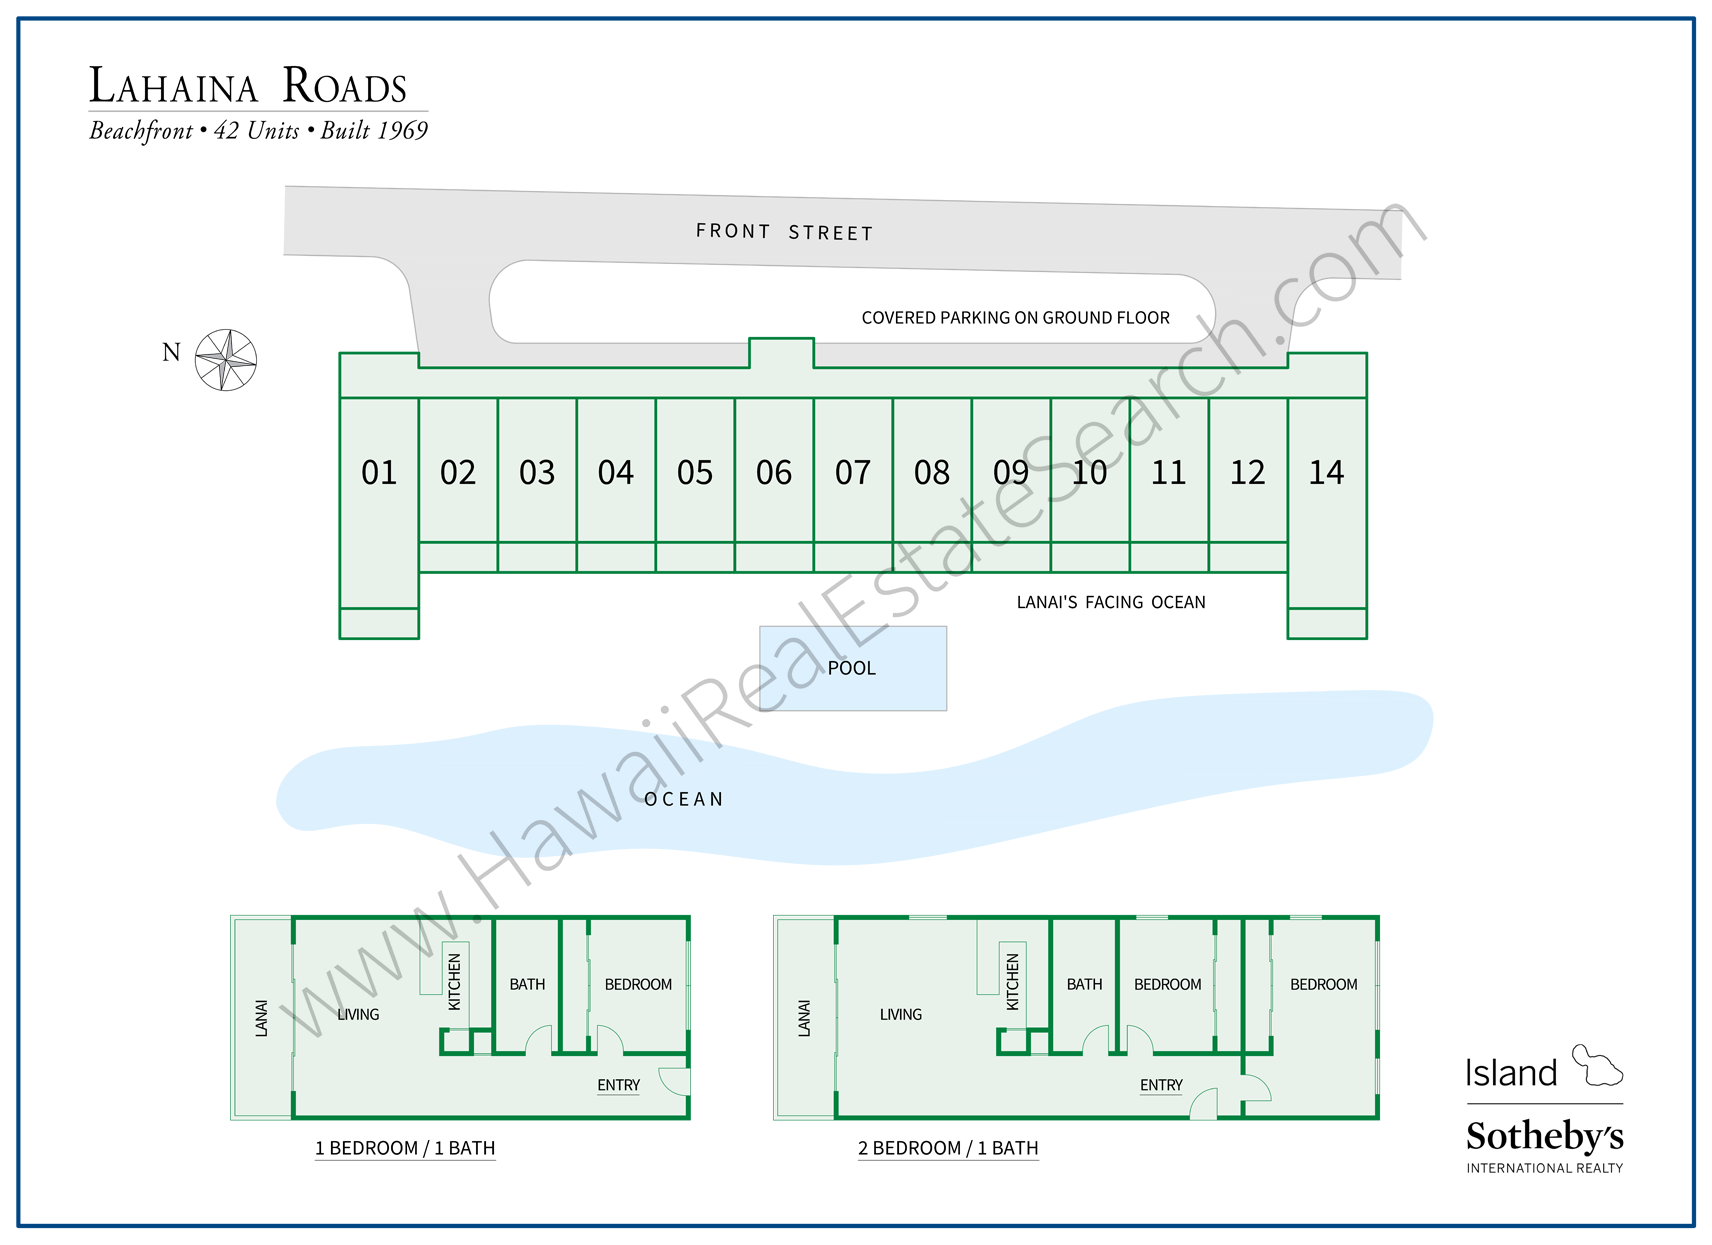 lahaina roads floor plan and map